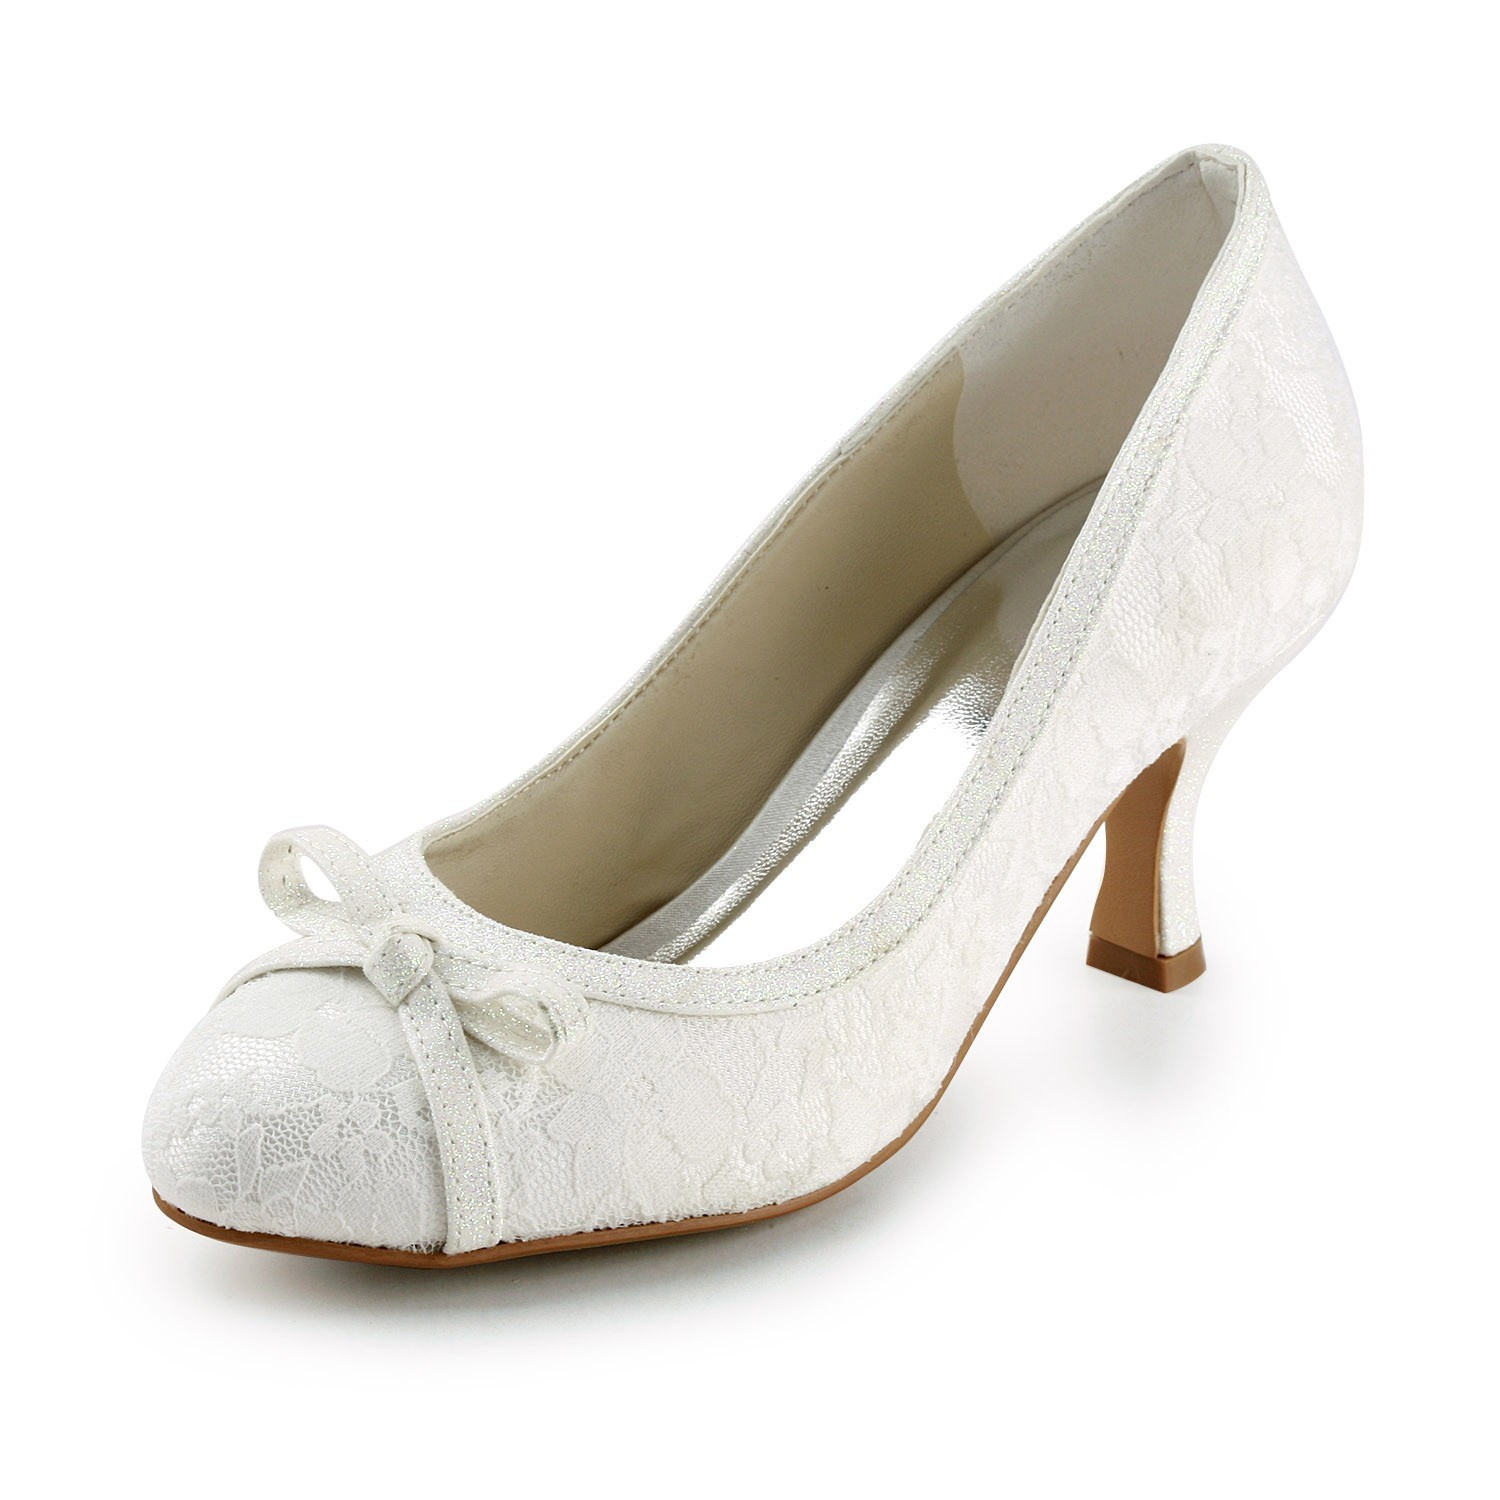 Closed Toe Weding Shoes 035 - Closed Toe Weding Shoes